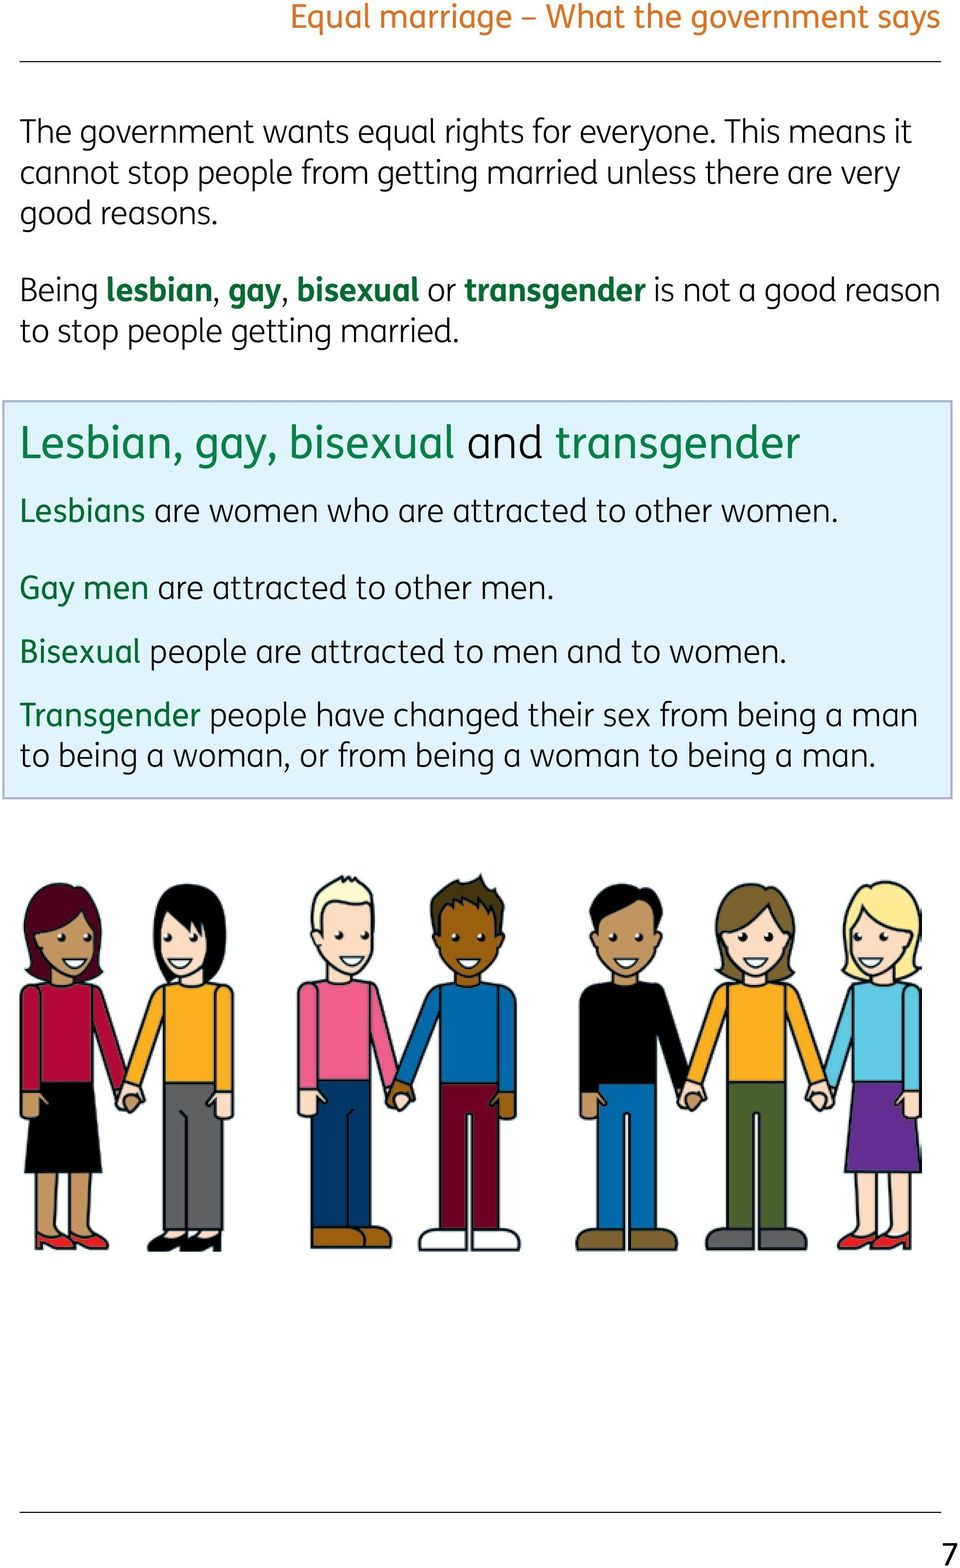 Being lesbian, gay, bisexual or transgender is not a good reason to stop people getting married.